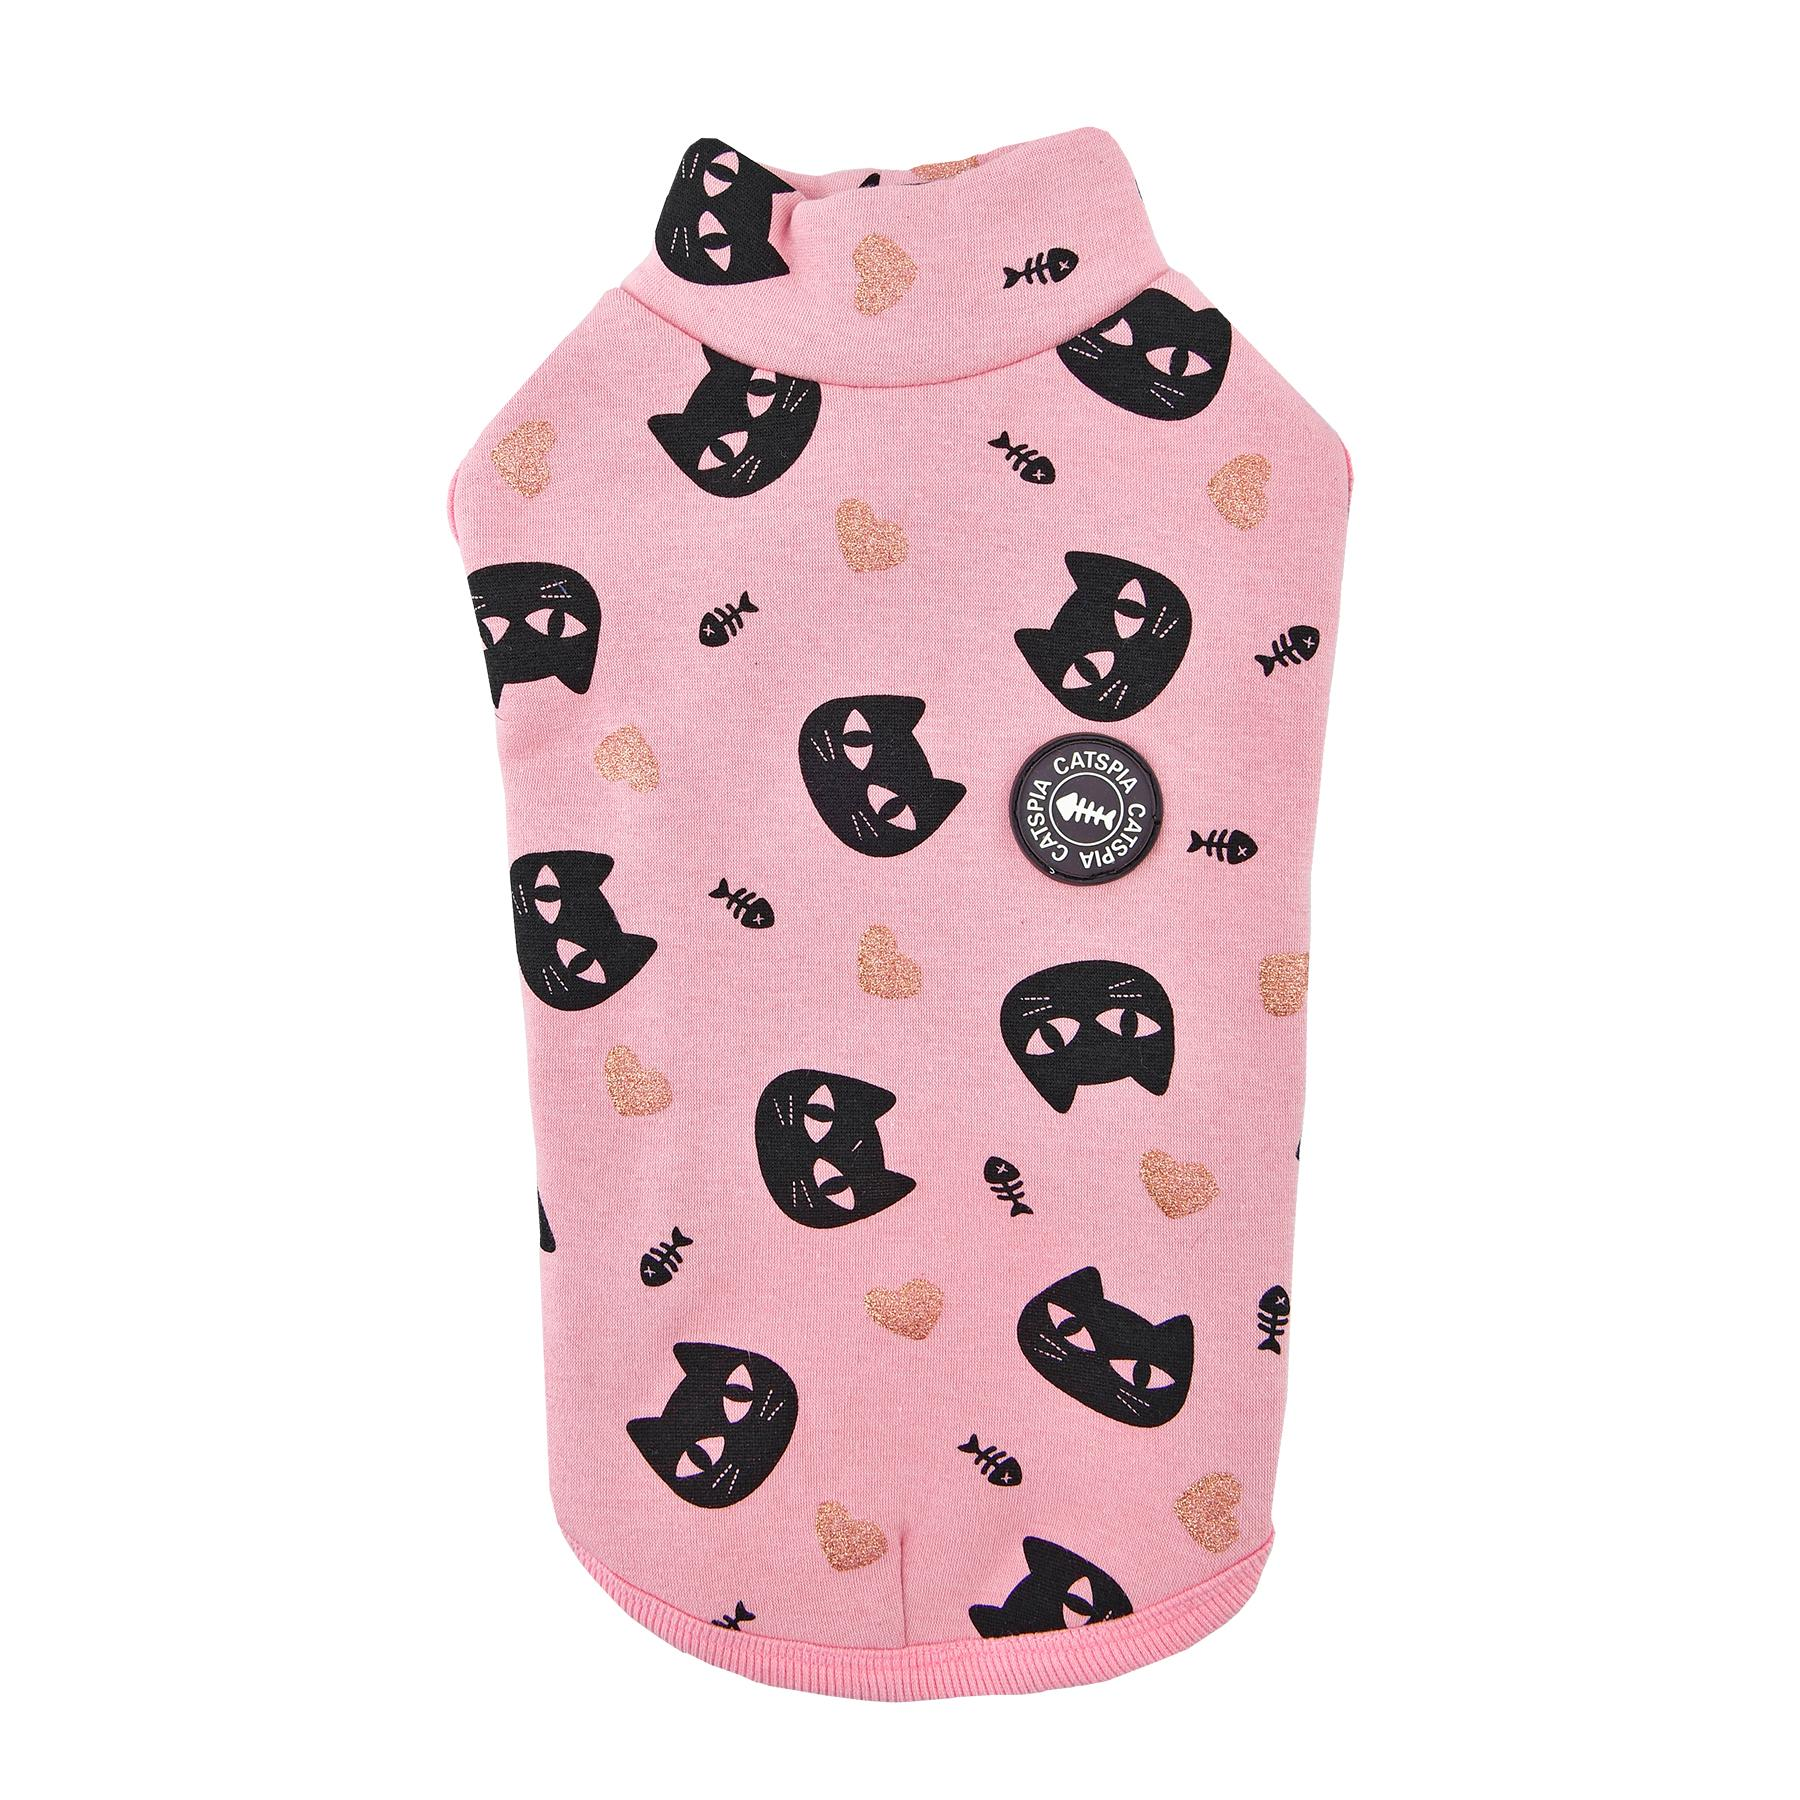 Milo Turtleneck Cat Shirt By Catspia - Pink